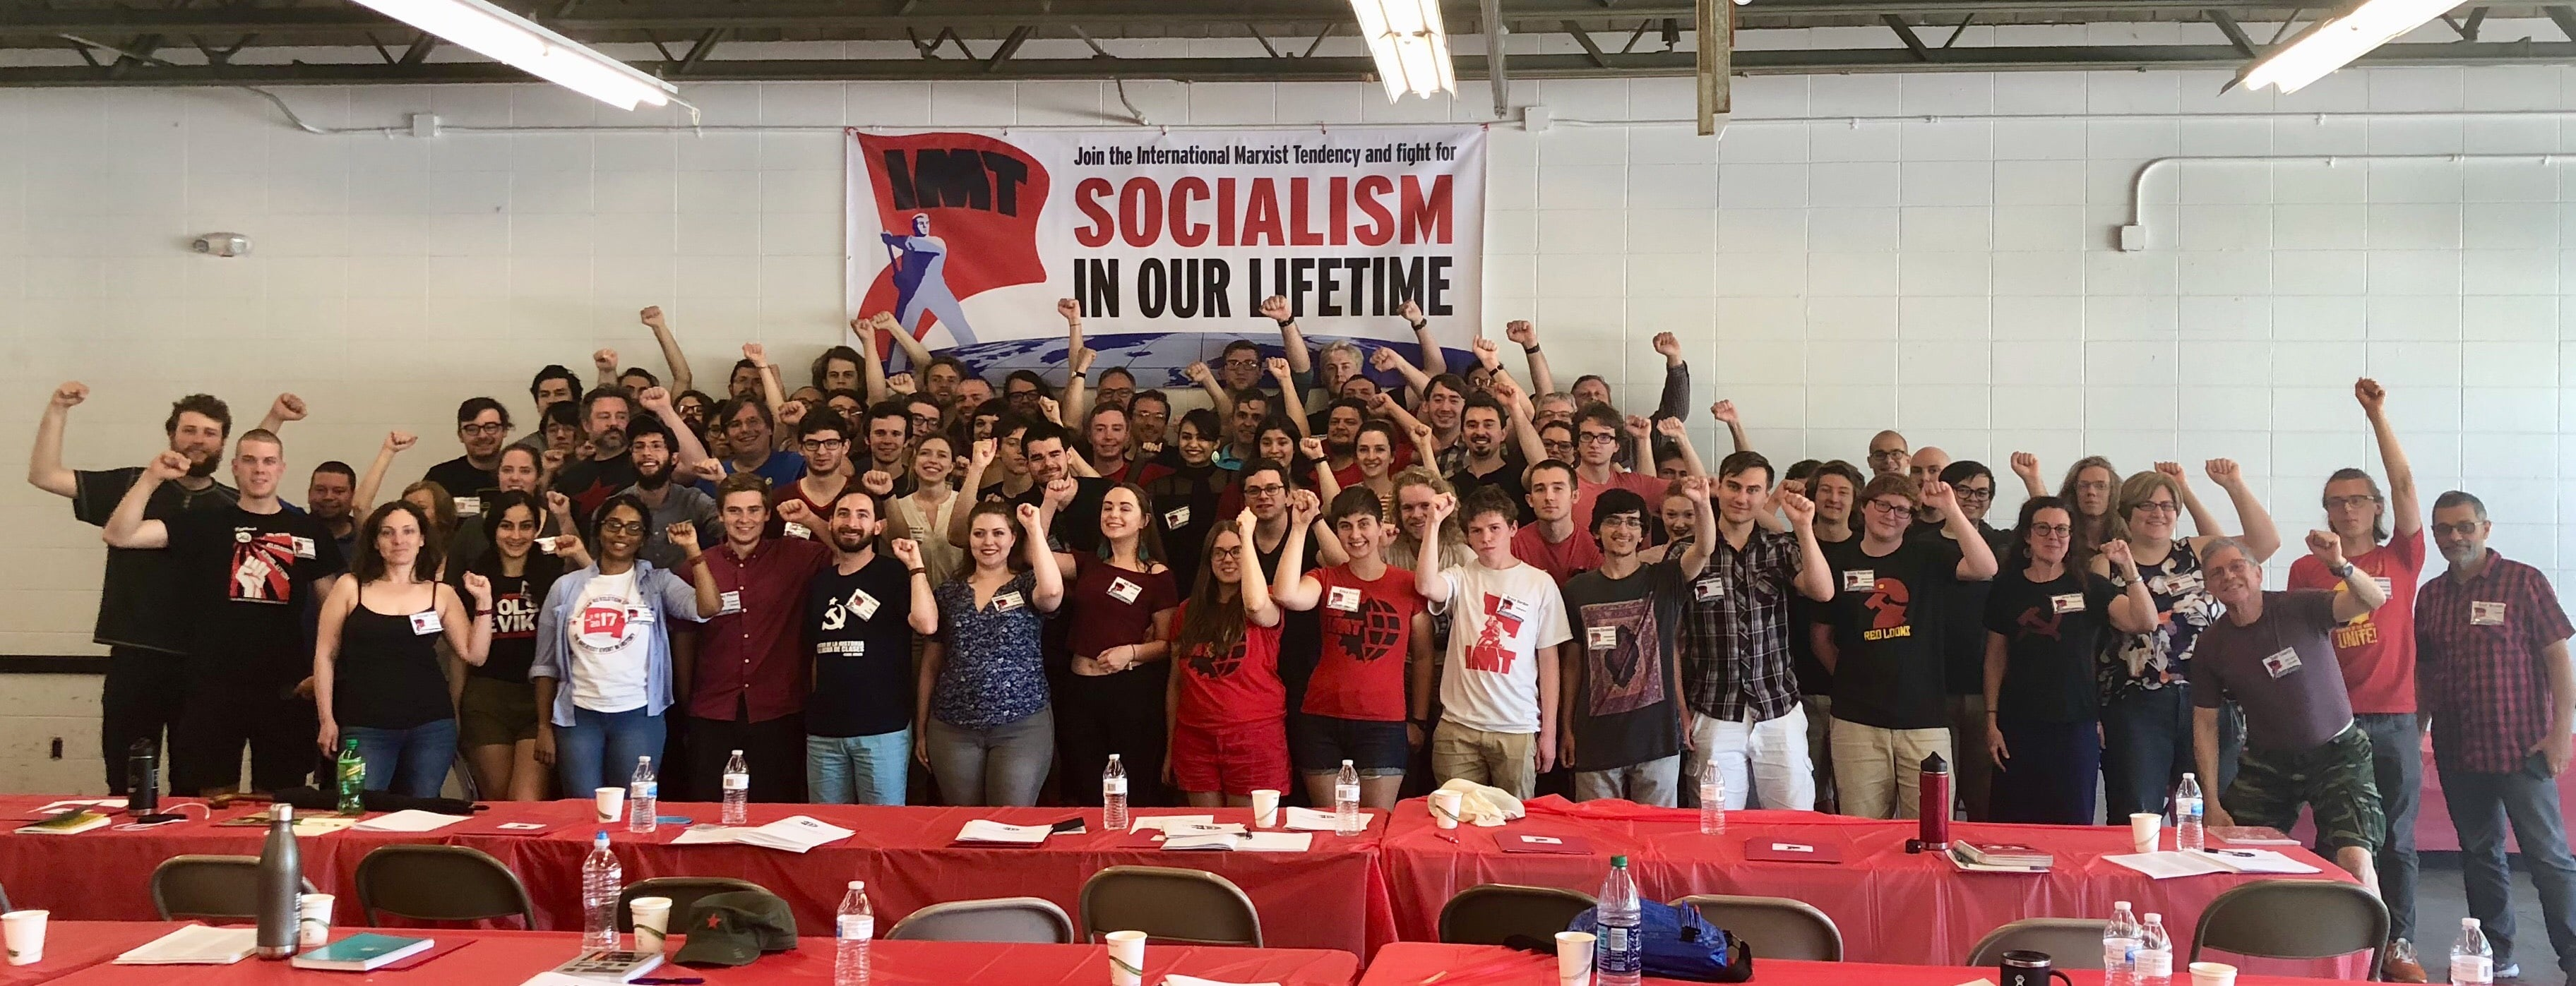 Socialist Revolution Congress Attendees